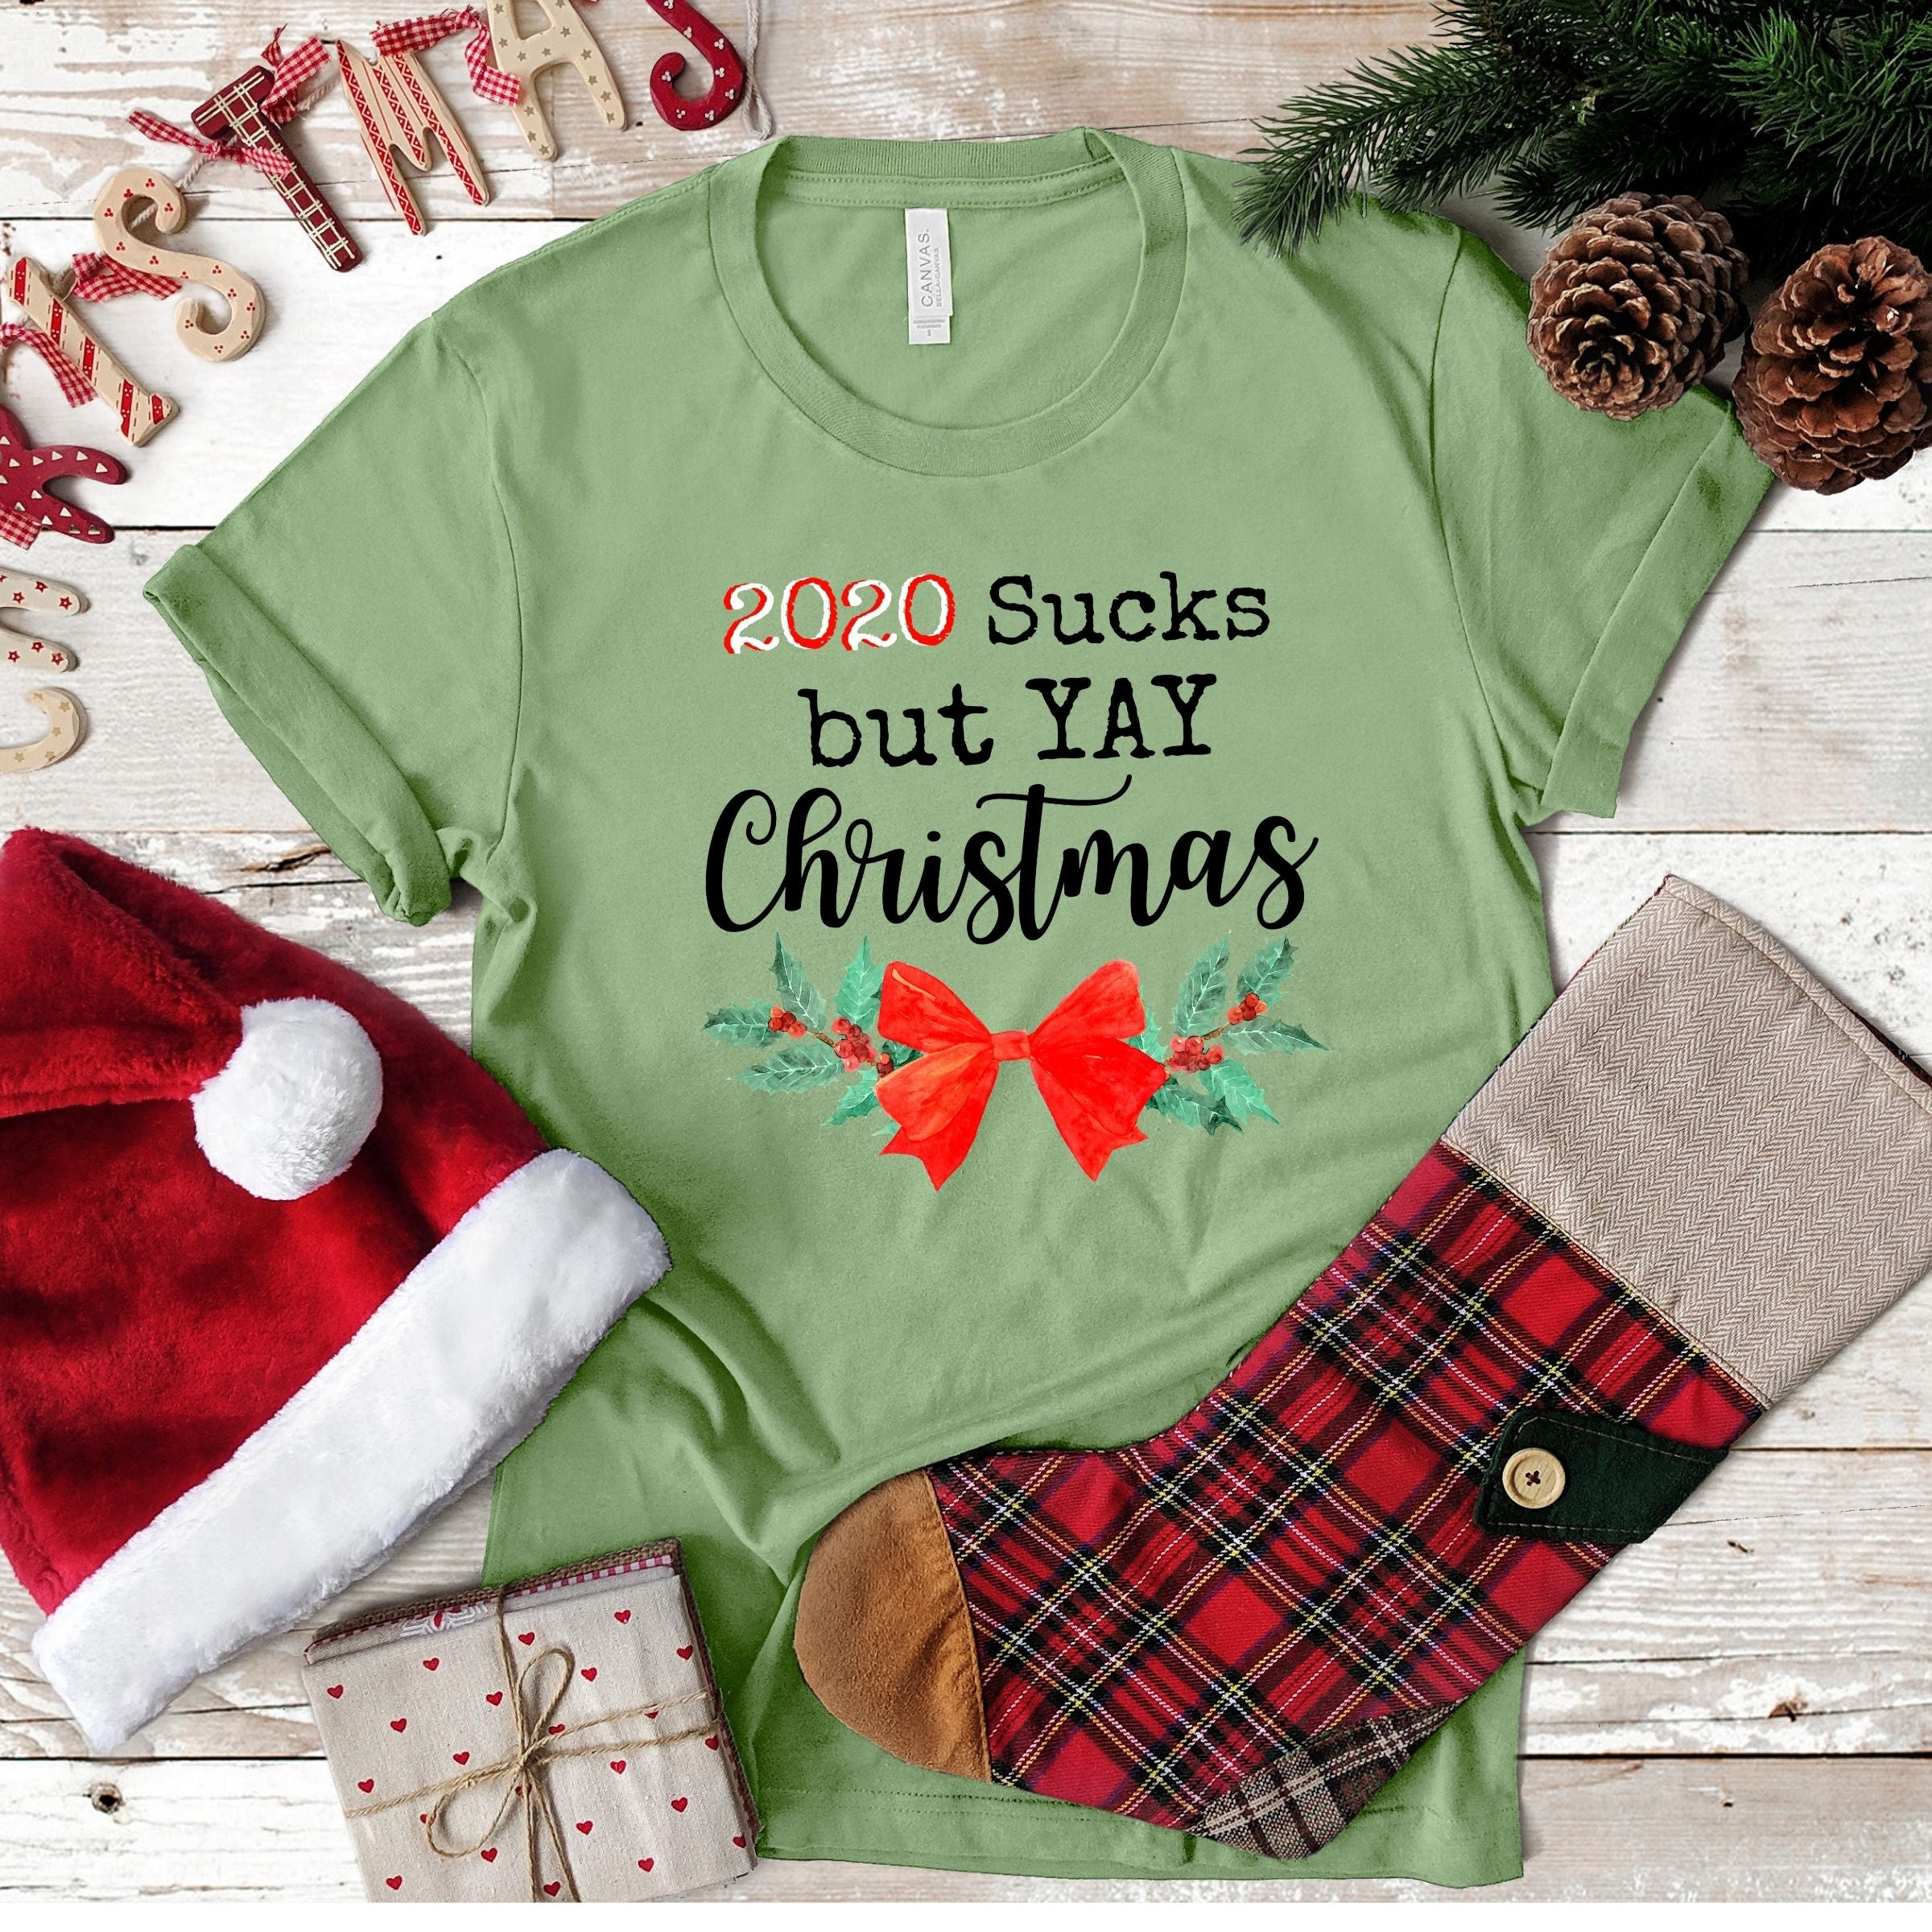 WHOLESALE :: 2020 Sucks But Yay Christmas~ Heather Green-WXmas-Shop-Wholesale-Womens-Boutique-Custom-Graphic-Tees-Branding-Gifts